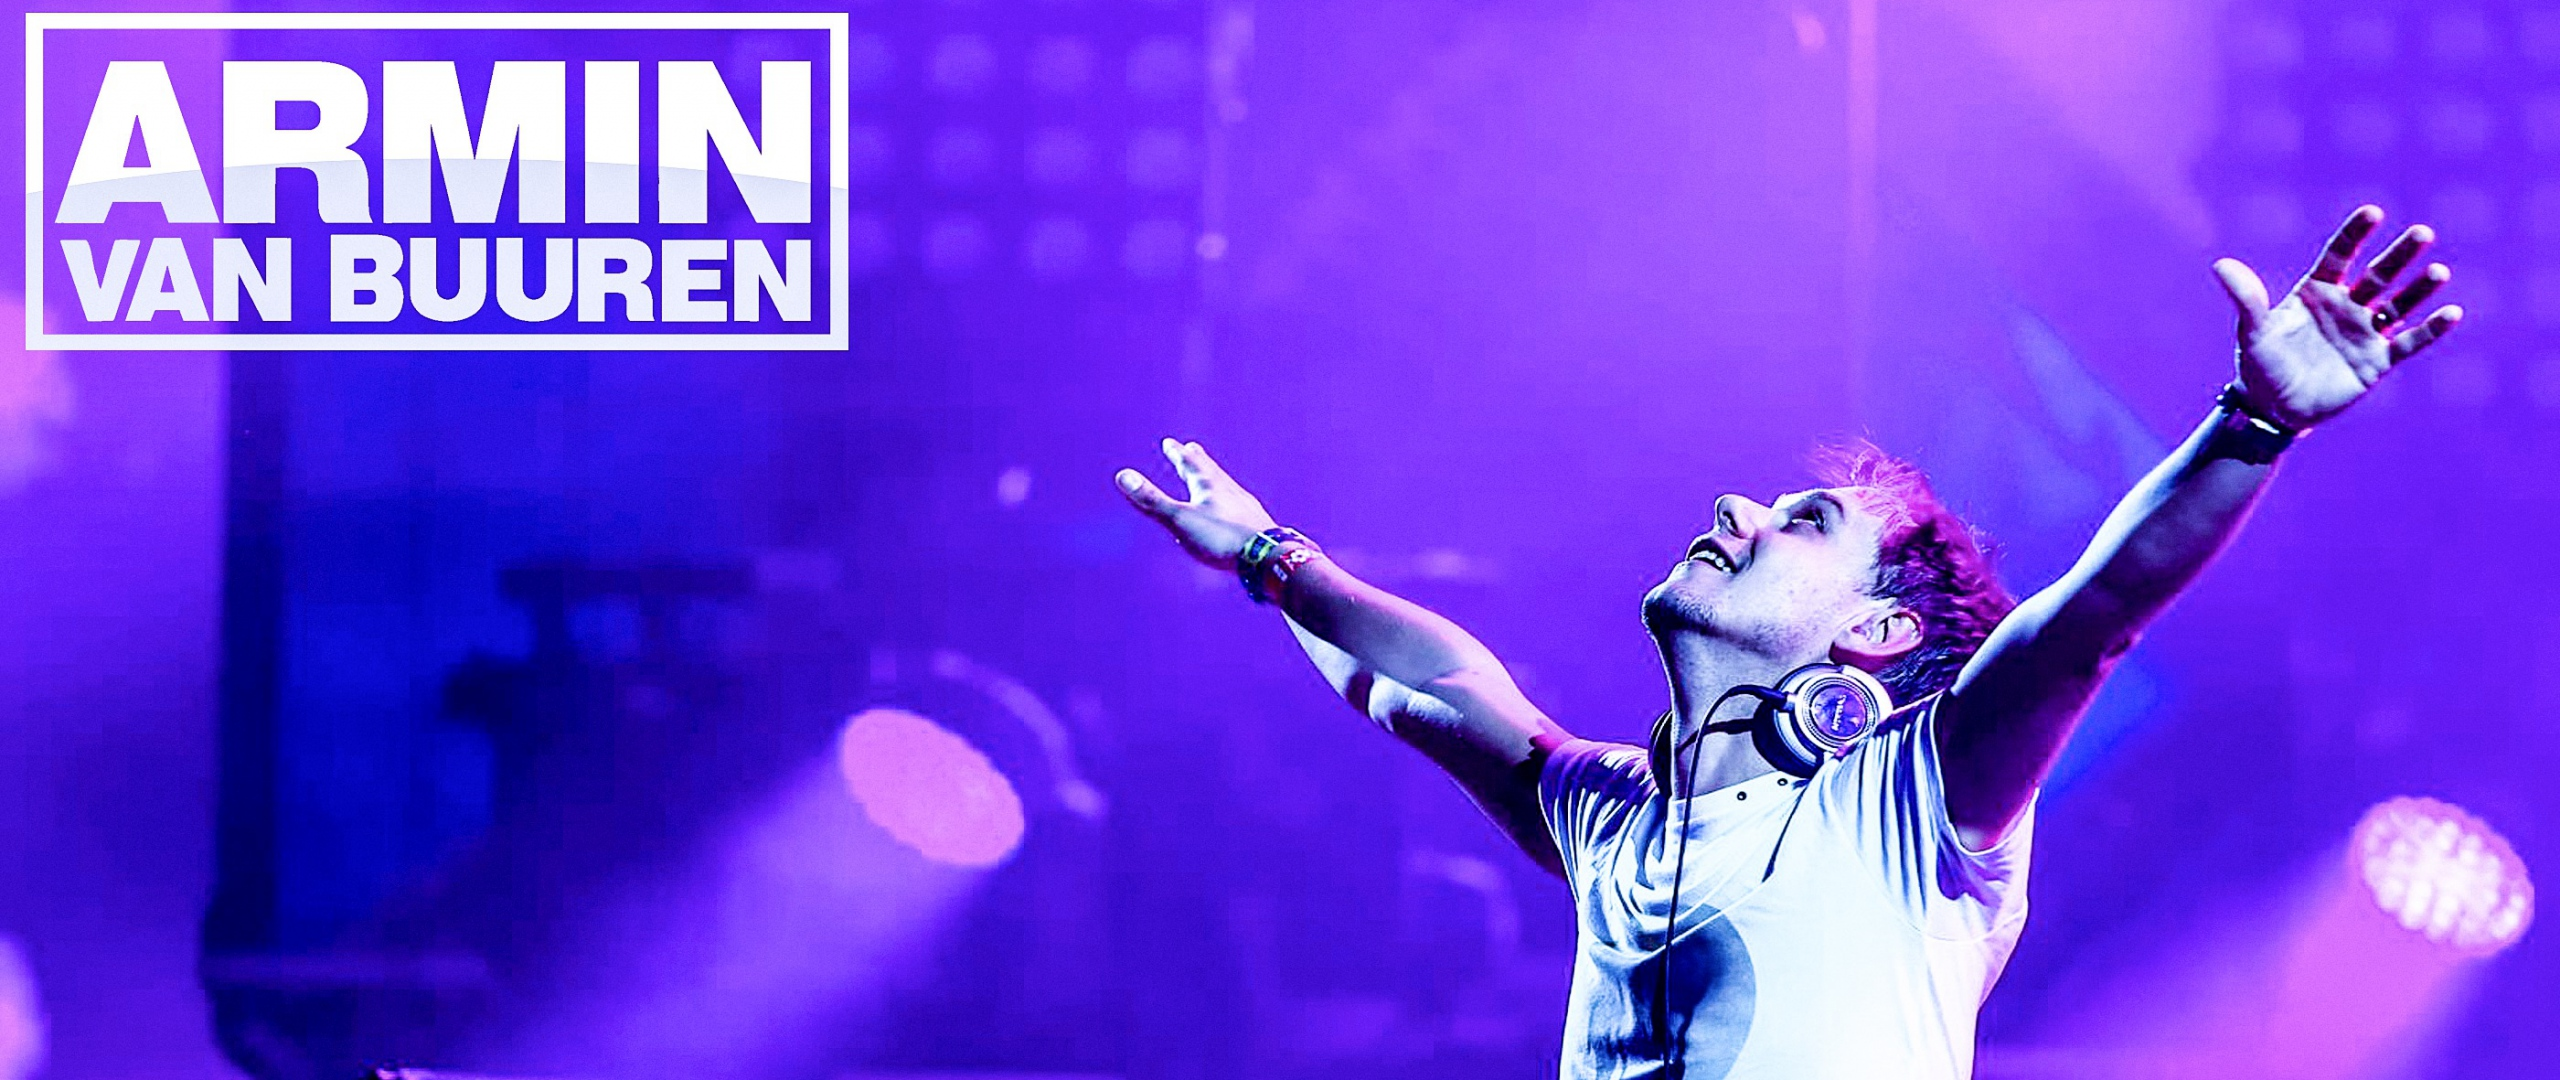 Armin van Buuren s trance evolution and the dark side of success